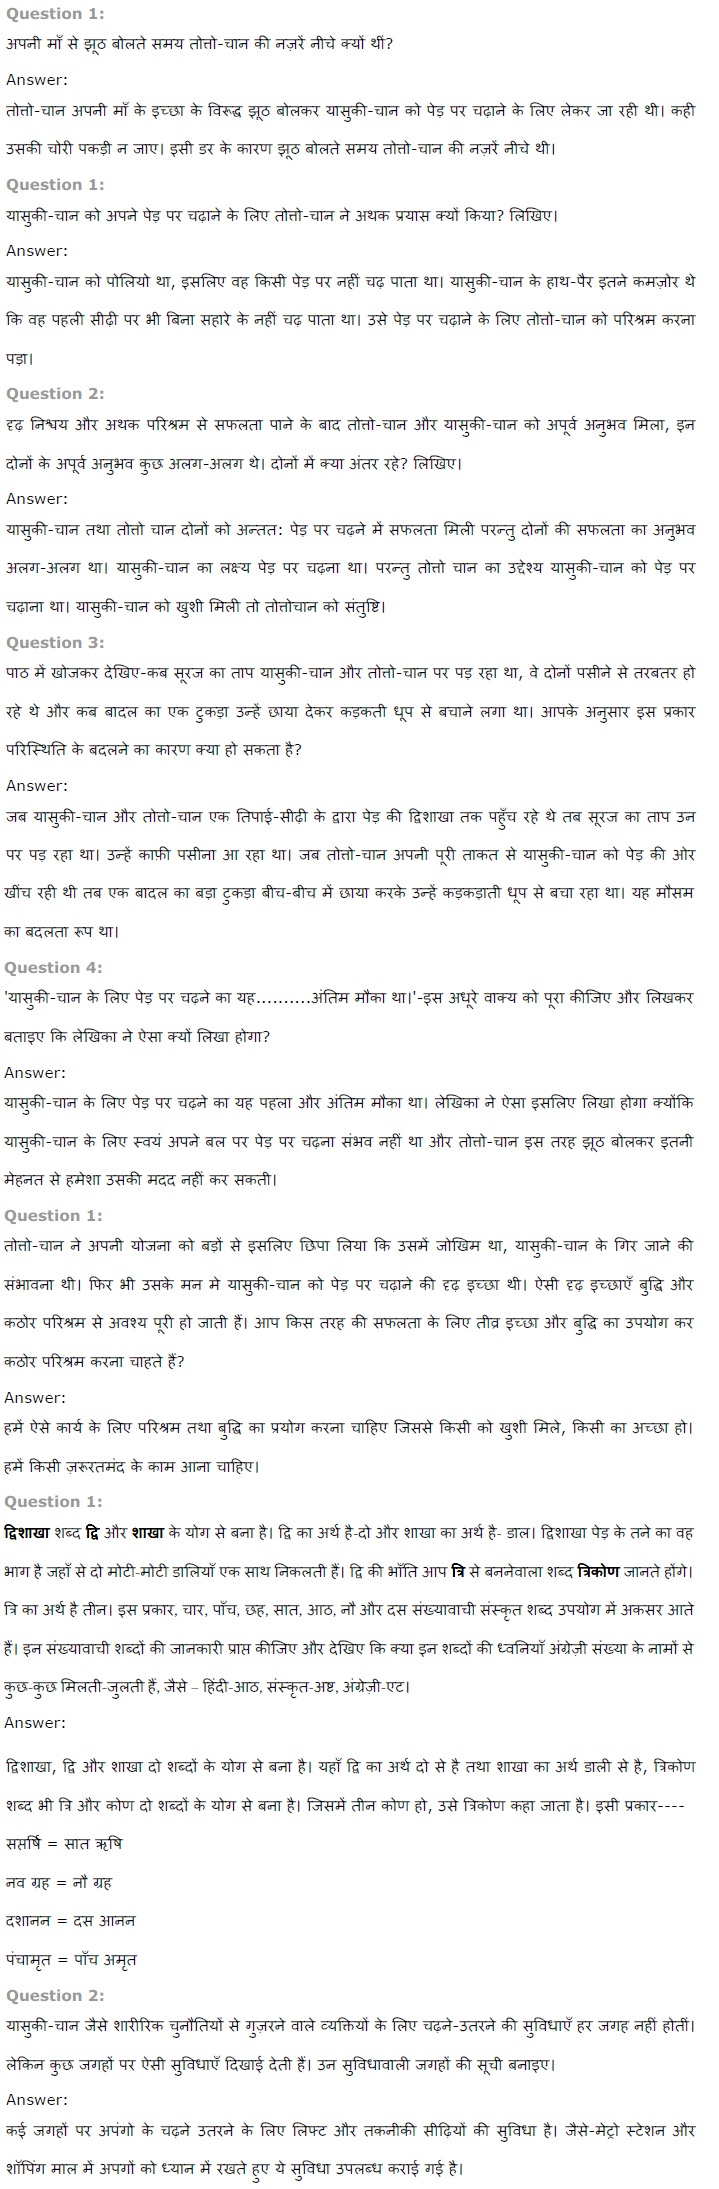 NCERT Solutions for Class 7th Hindi Chapter 10 अपूर्व अनुभव